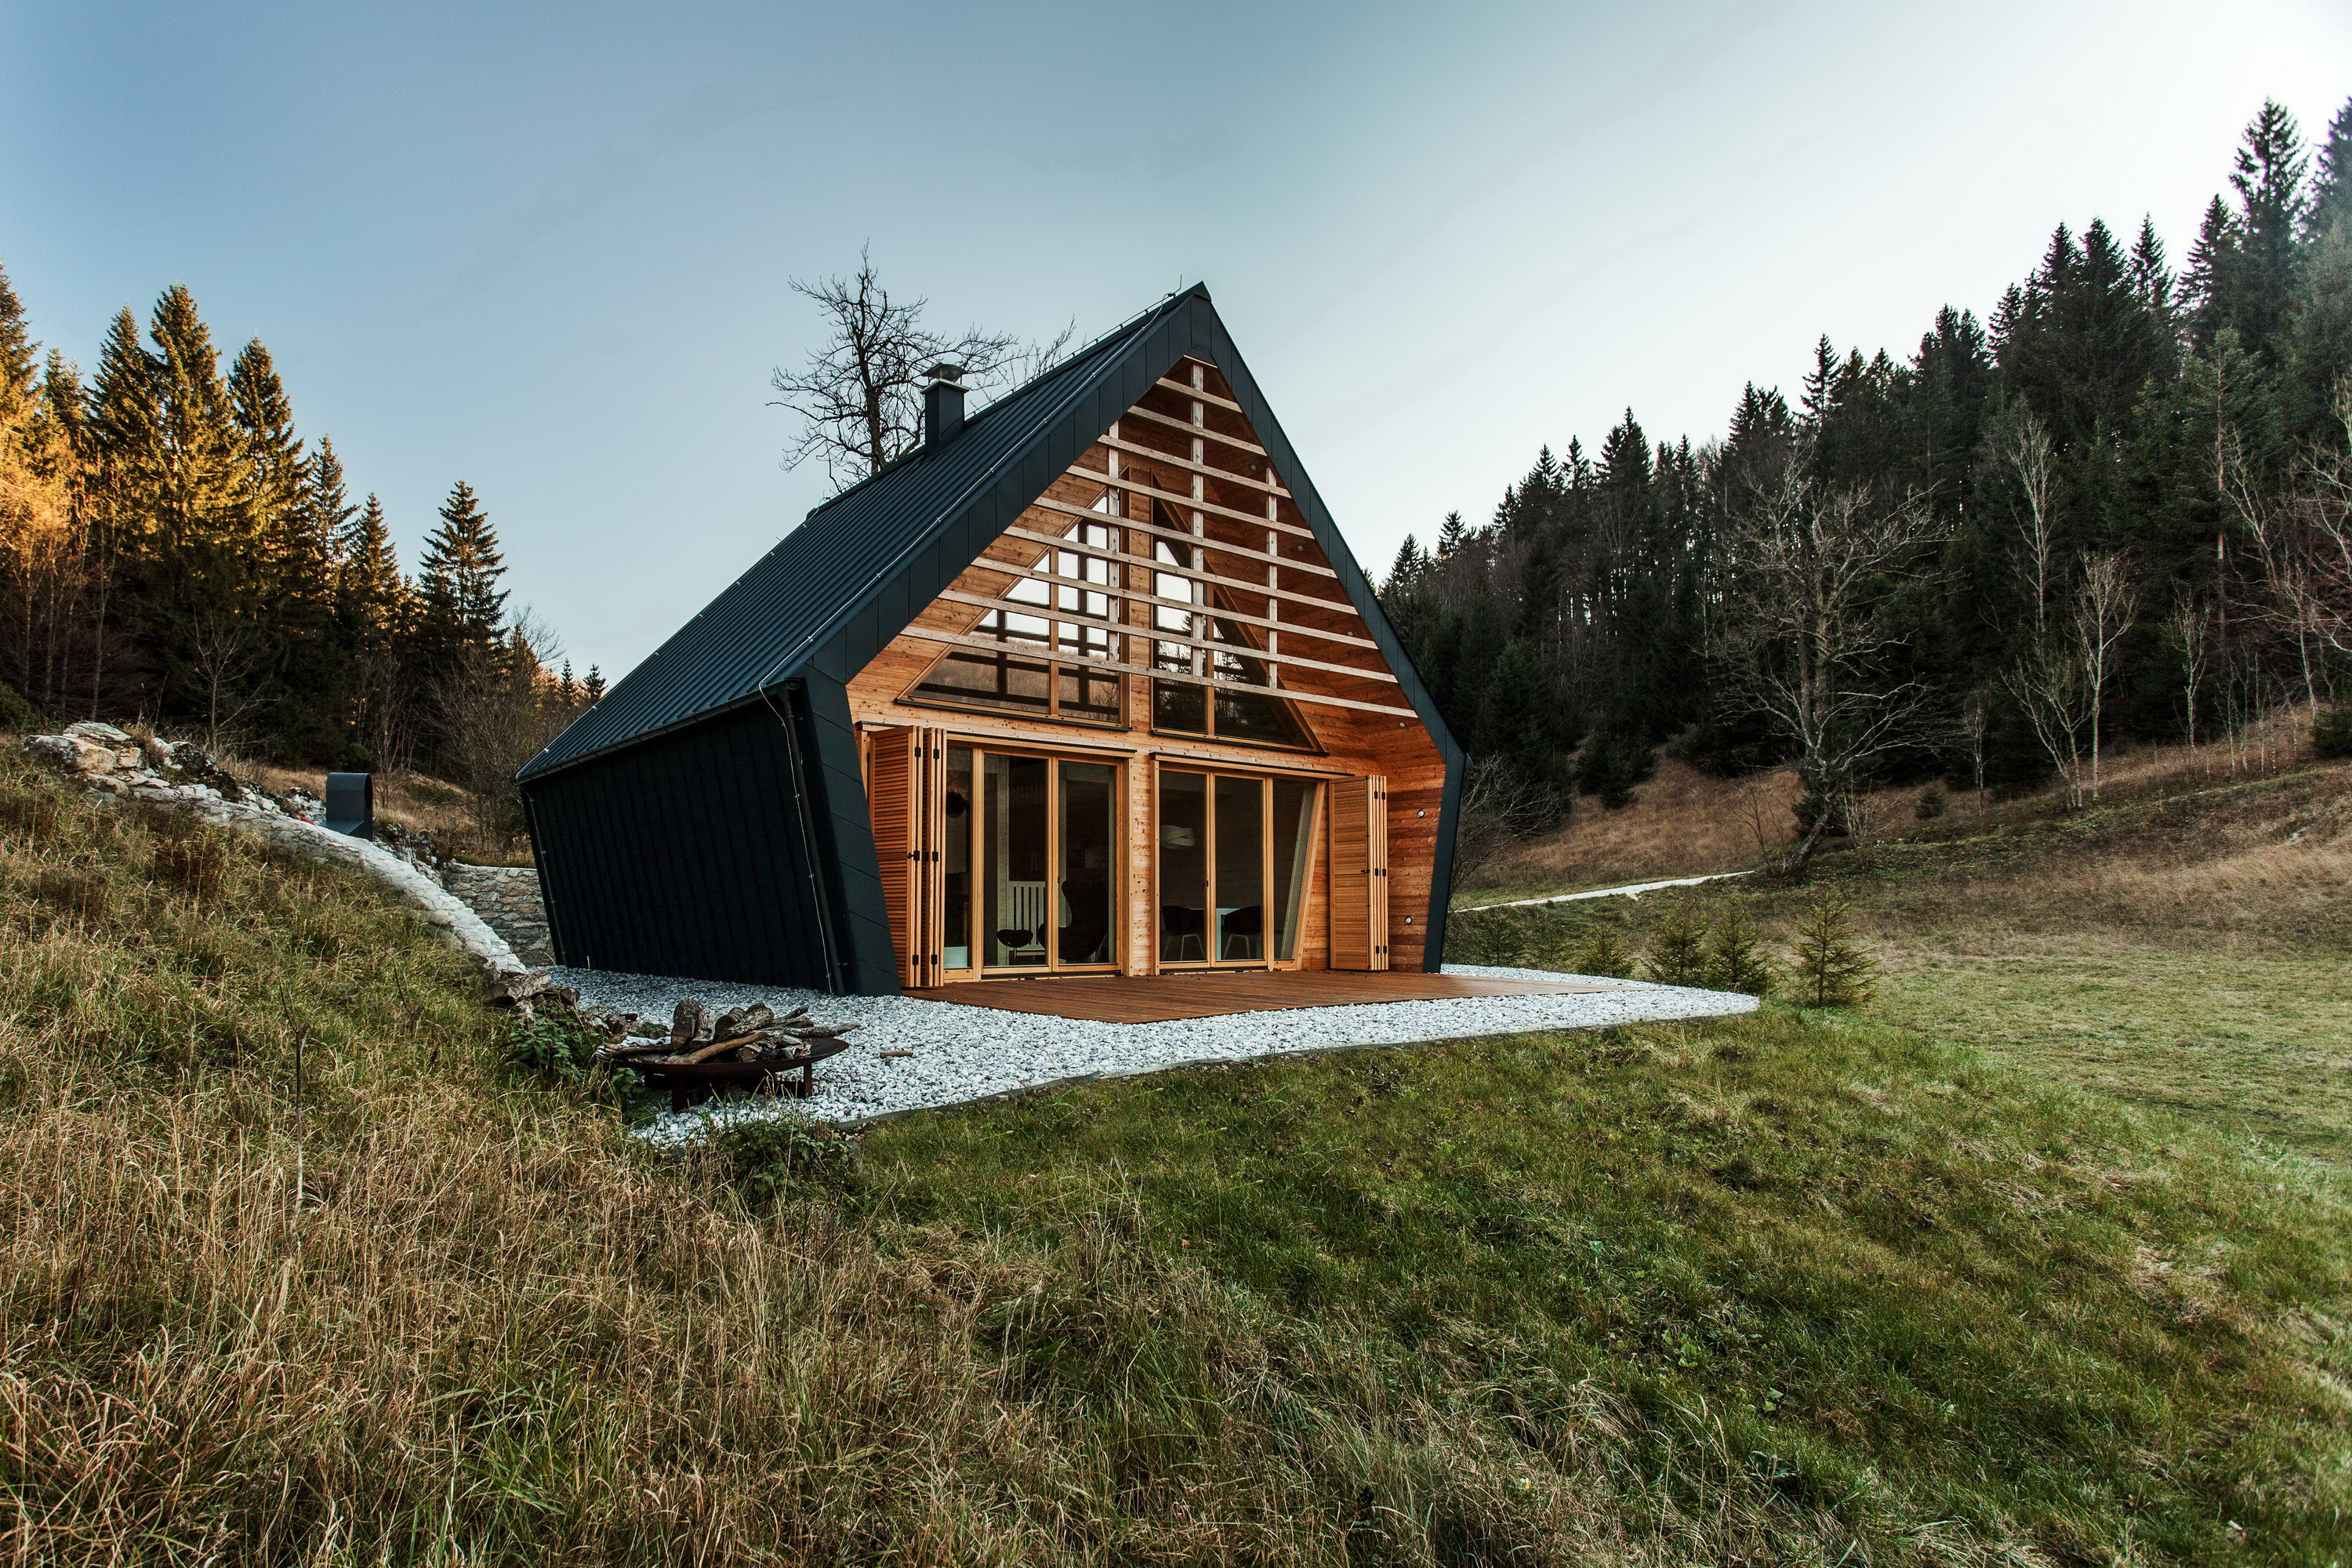 The Wooden House by Studio Pikaplus